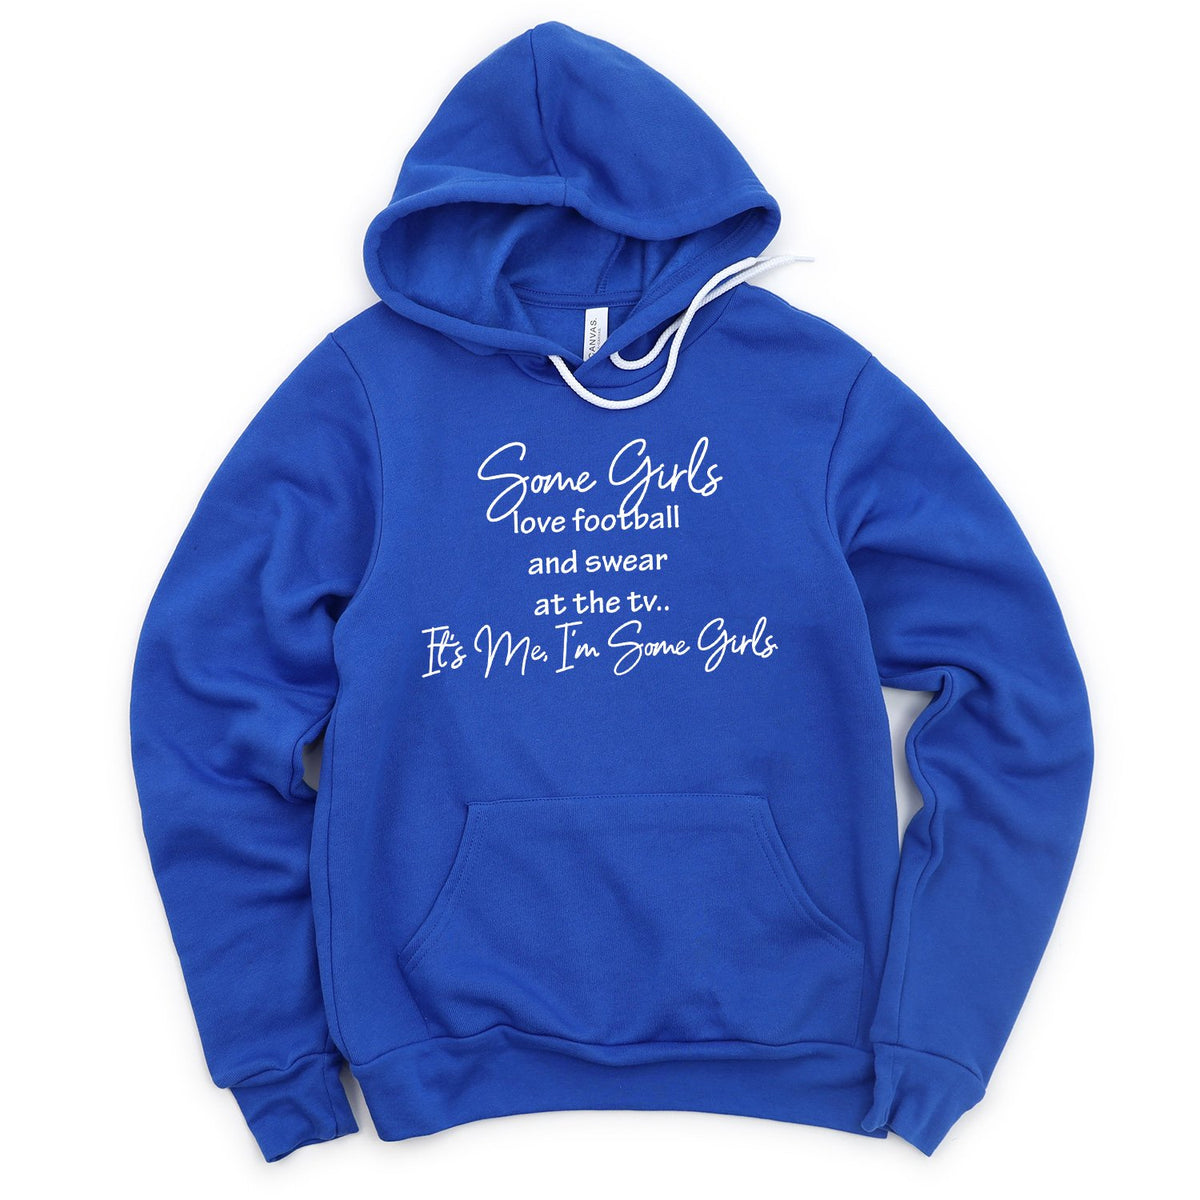 Some Girls Love Football and Swear at the TV - Hoodie Sweatshirt